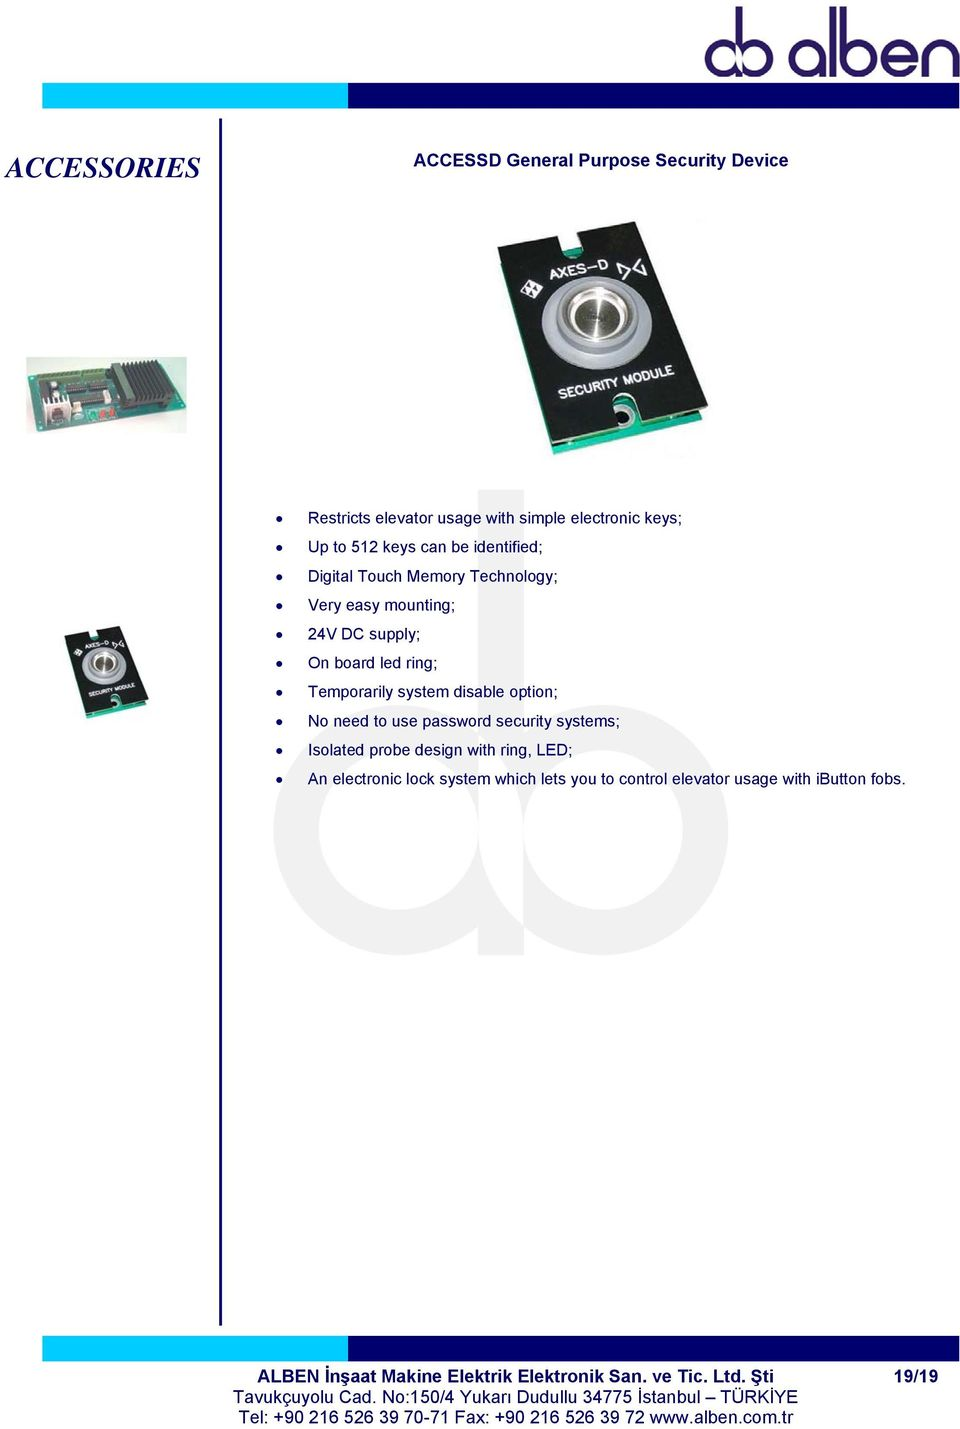 system disable option; No need to use password security systems; Isolated probe design with ring, LED; An electronic lock